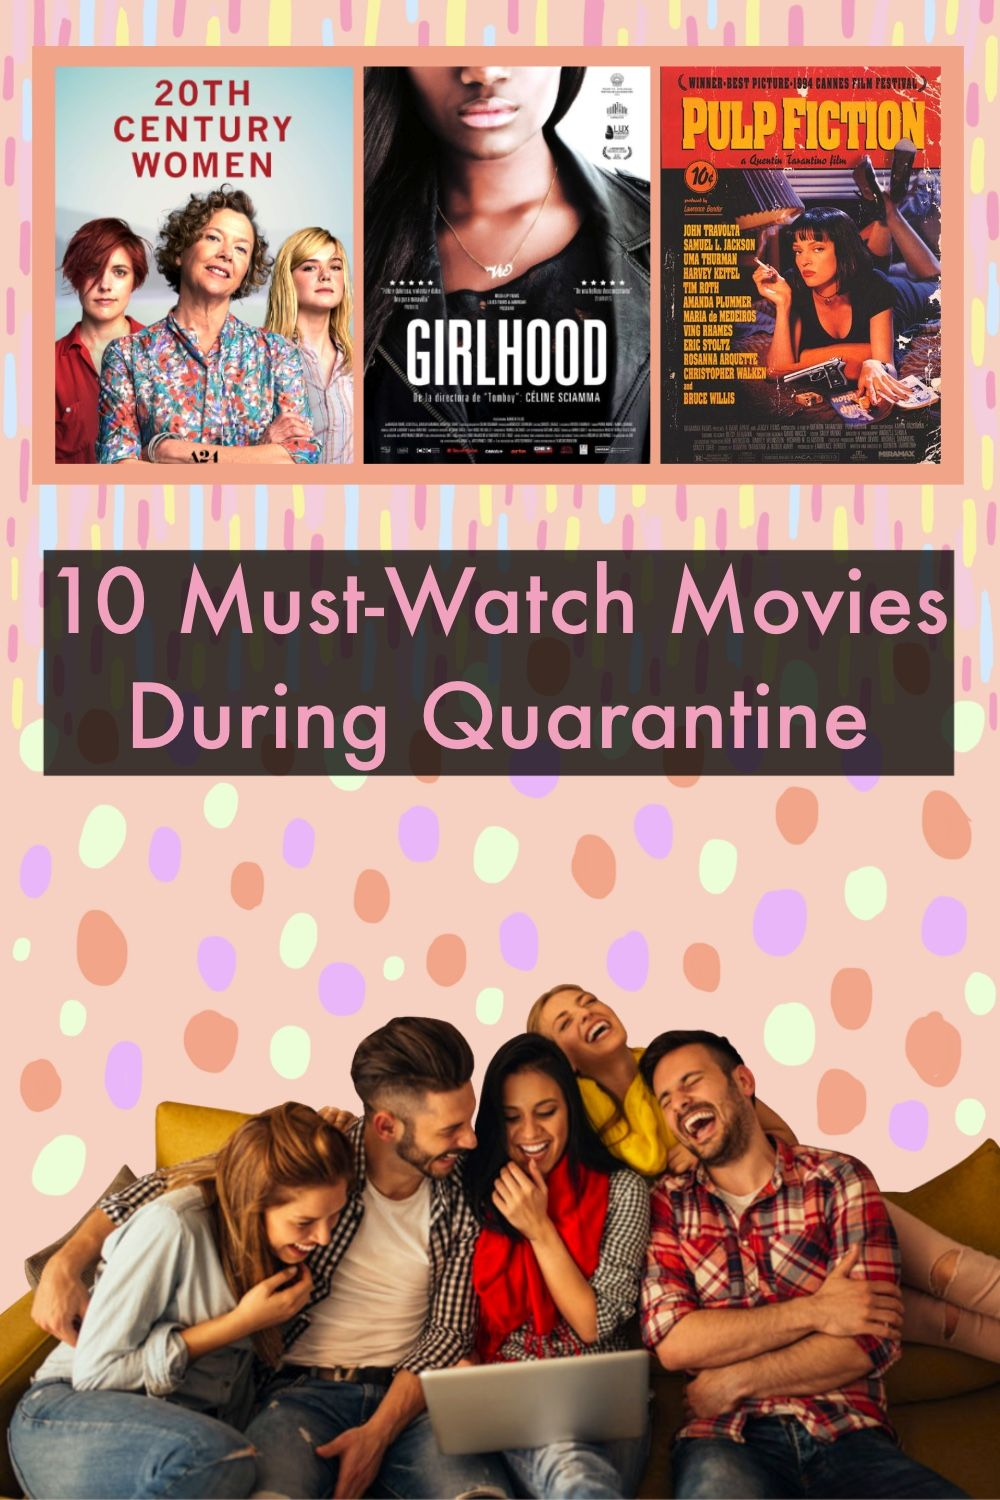 Pin by DonebyTaski on Best Movies Ever in 2020 Movies to